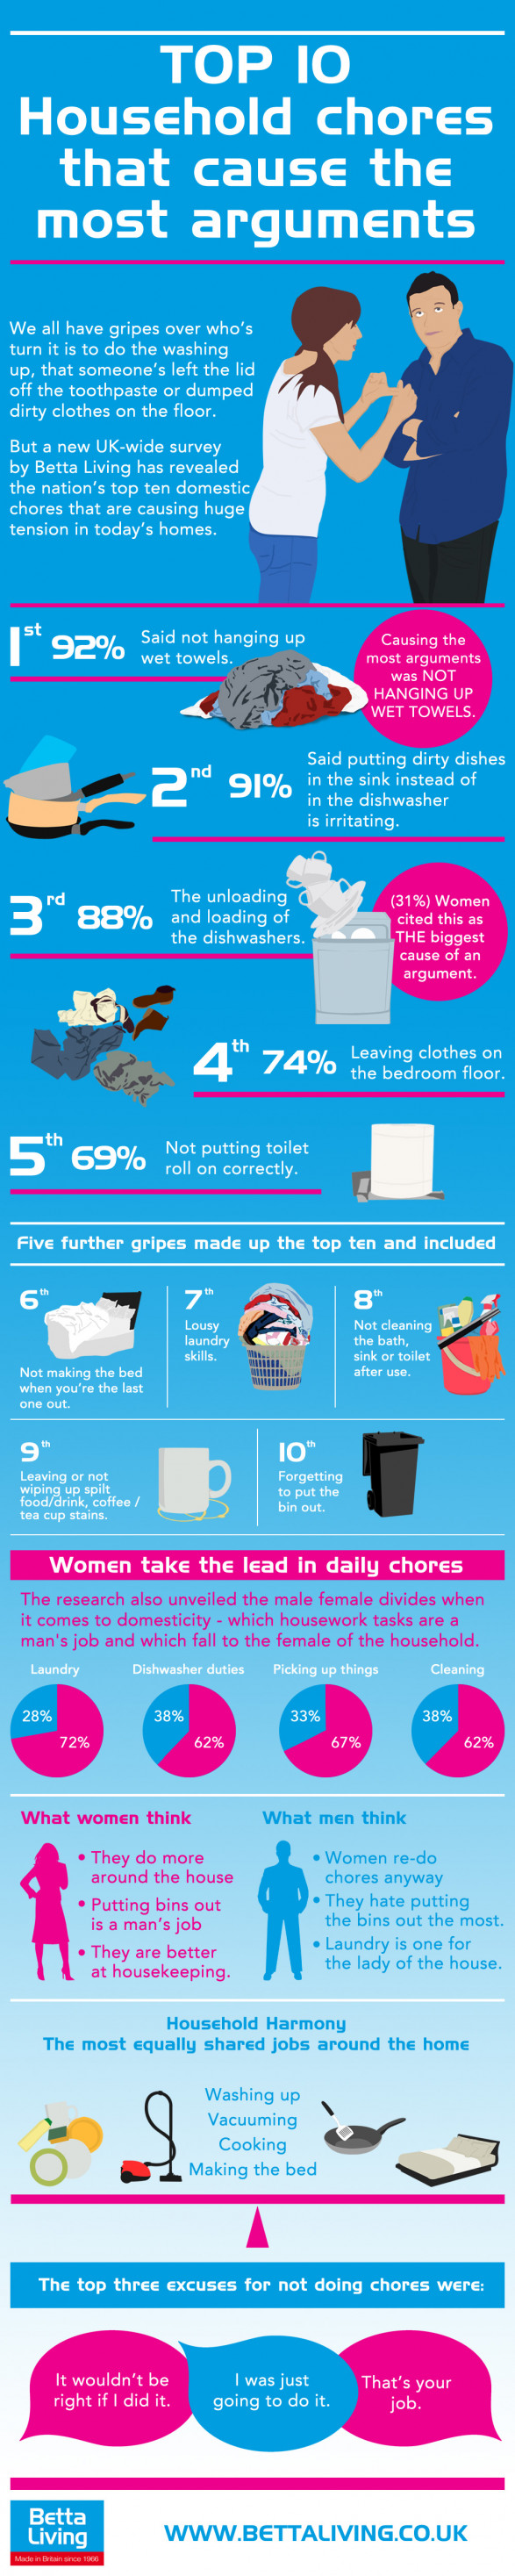 Top 10 household chores that cause the most arguments